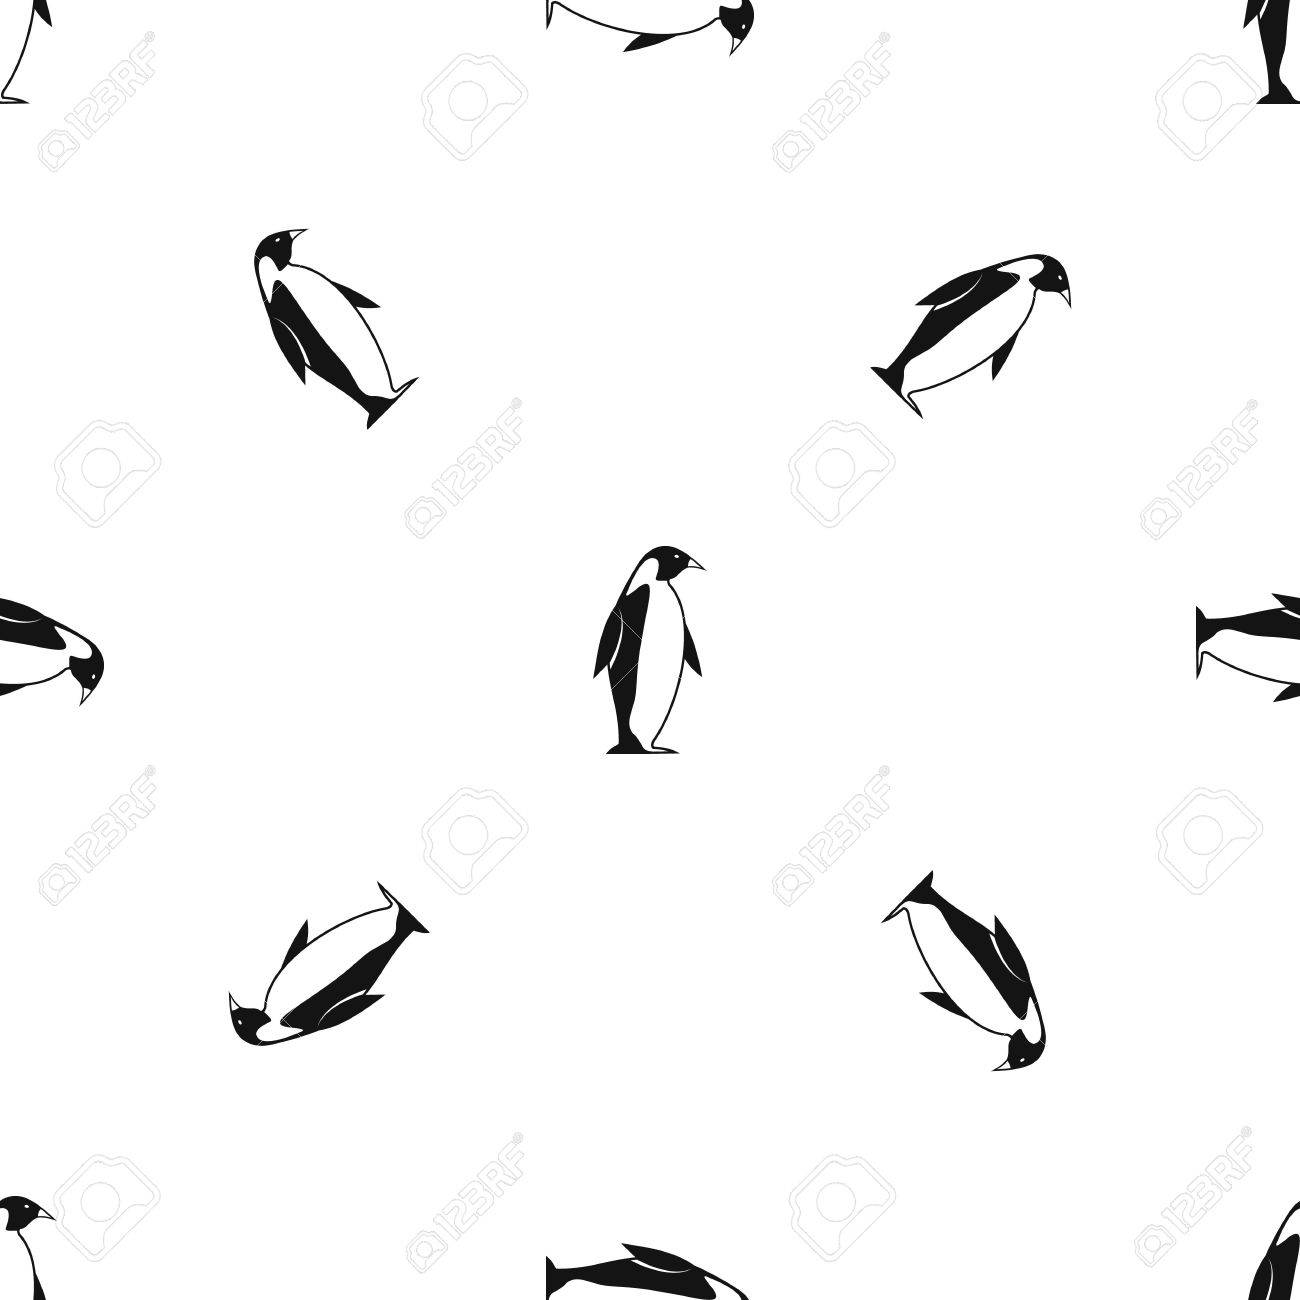 King penguin pattern repeat seamless in black color for any design. Vector geometric illustration - 84072970